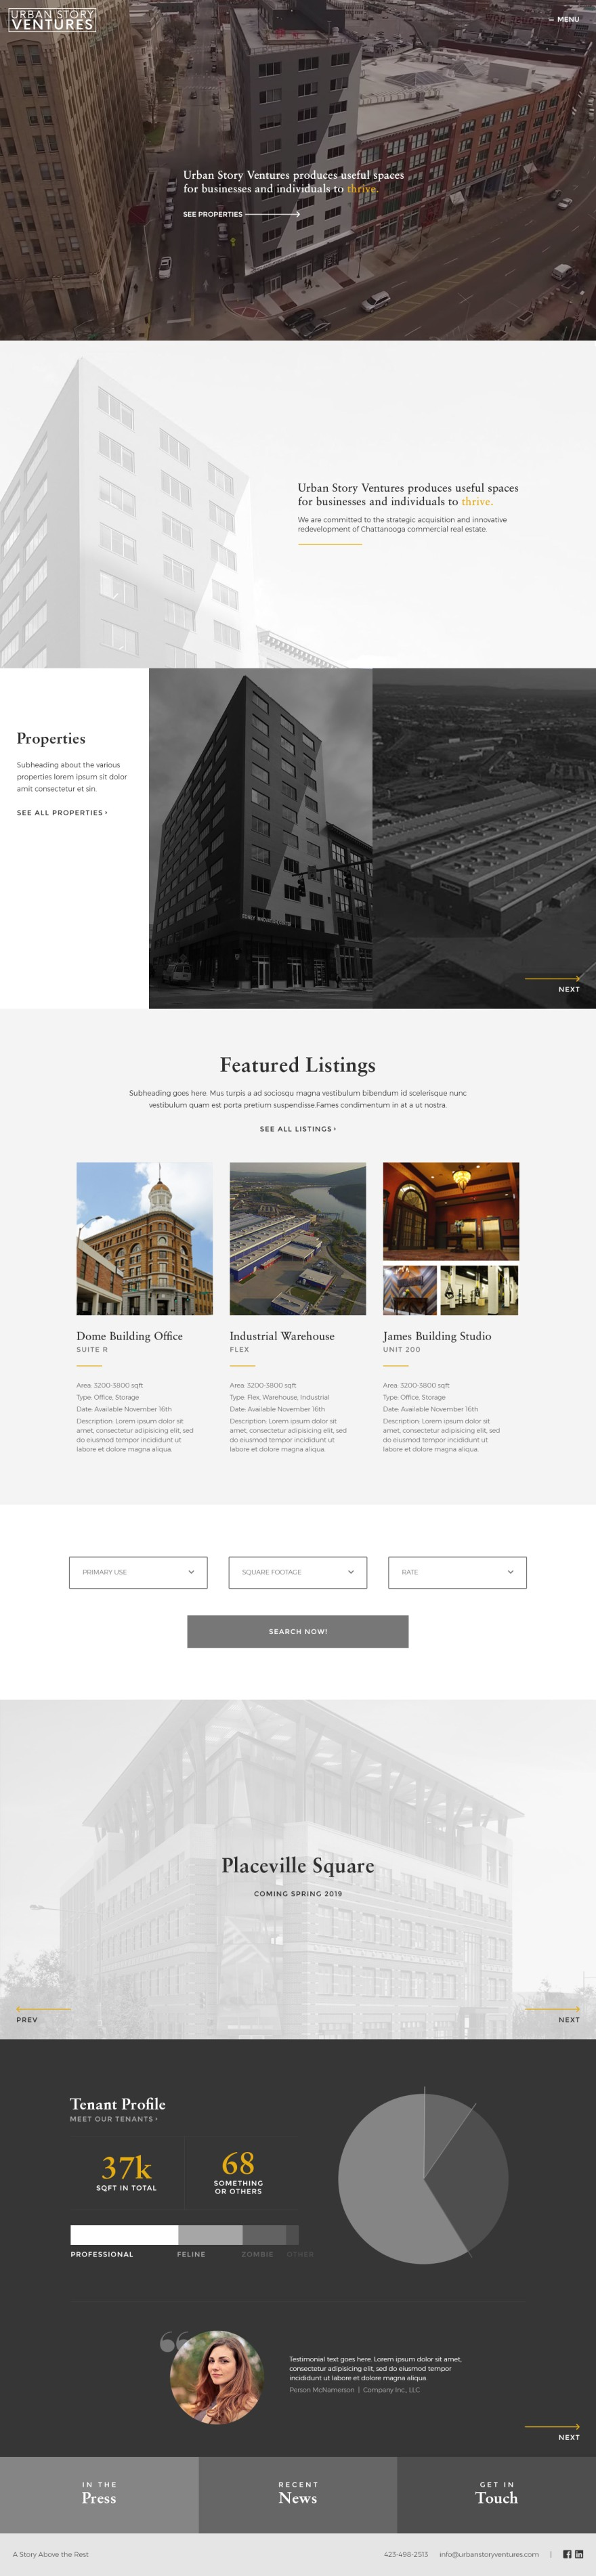 Urban Story Ventures - Website Home Page